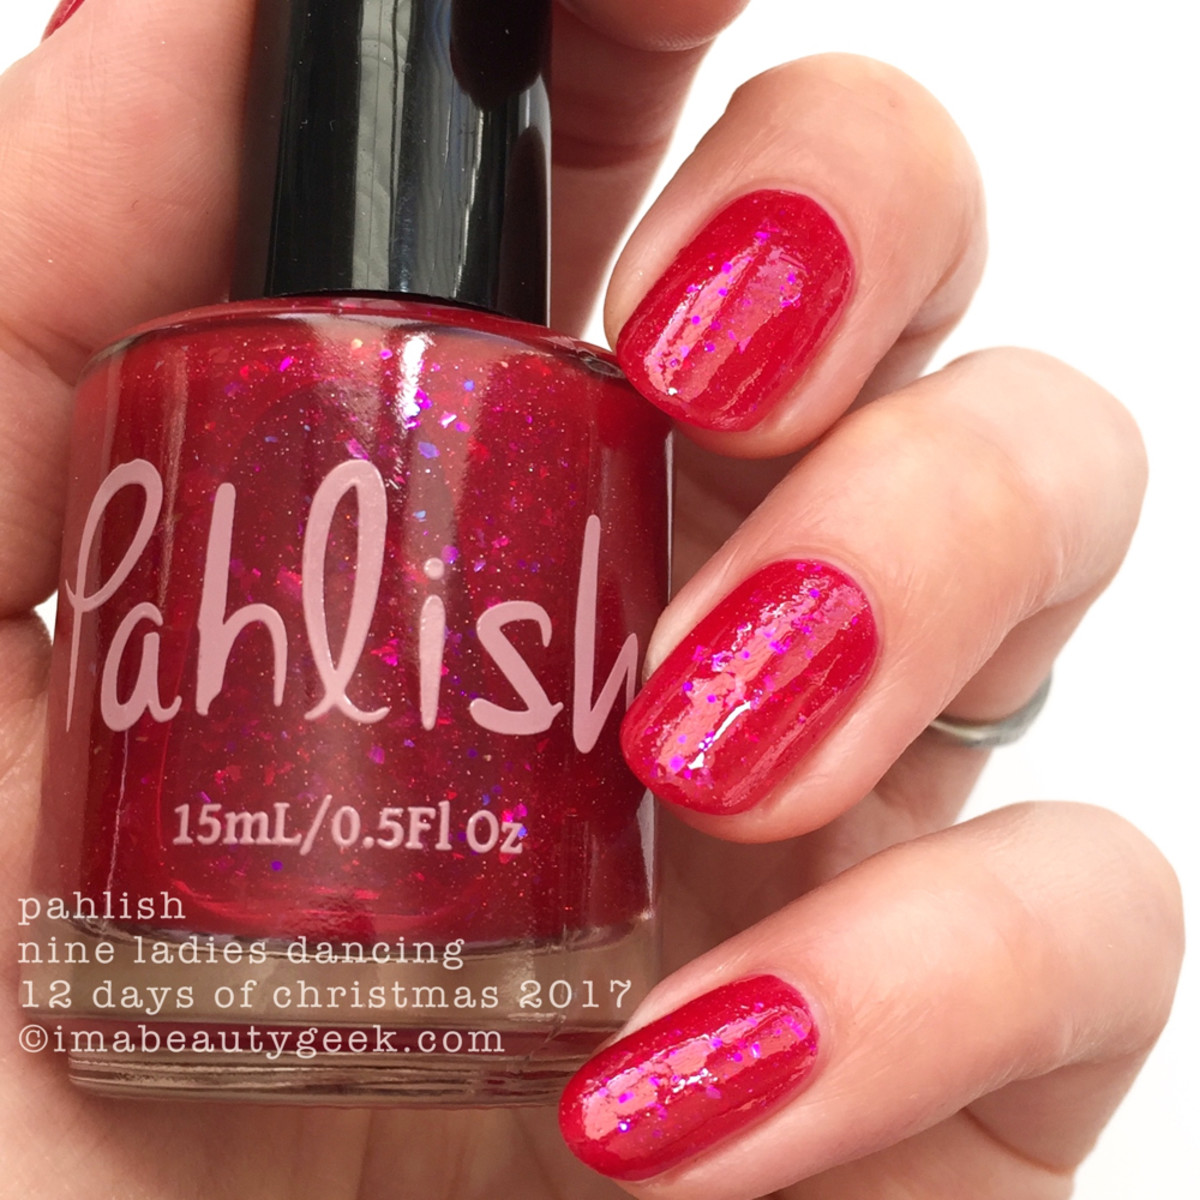 Pahlish Nine Ladies Dancing - Pahlish 12 Days of Christmas 2017 2